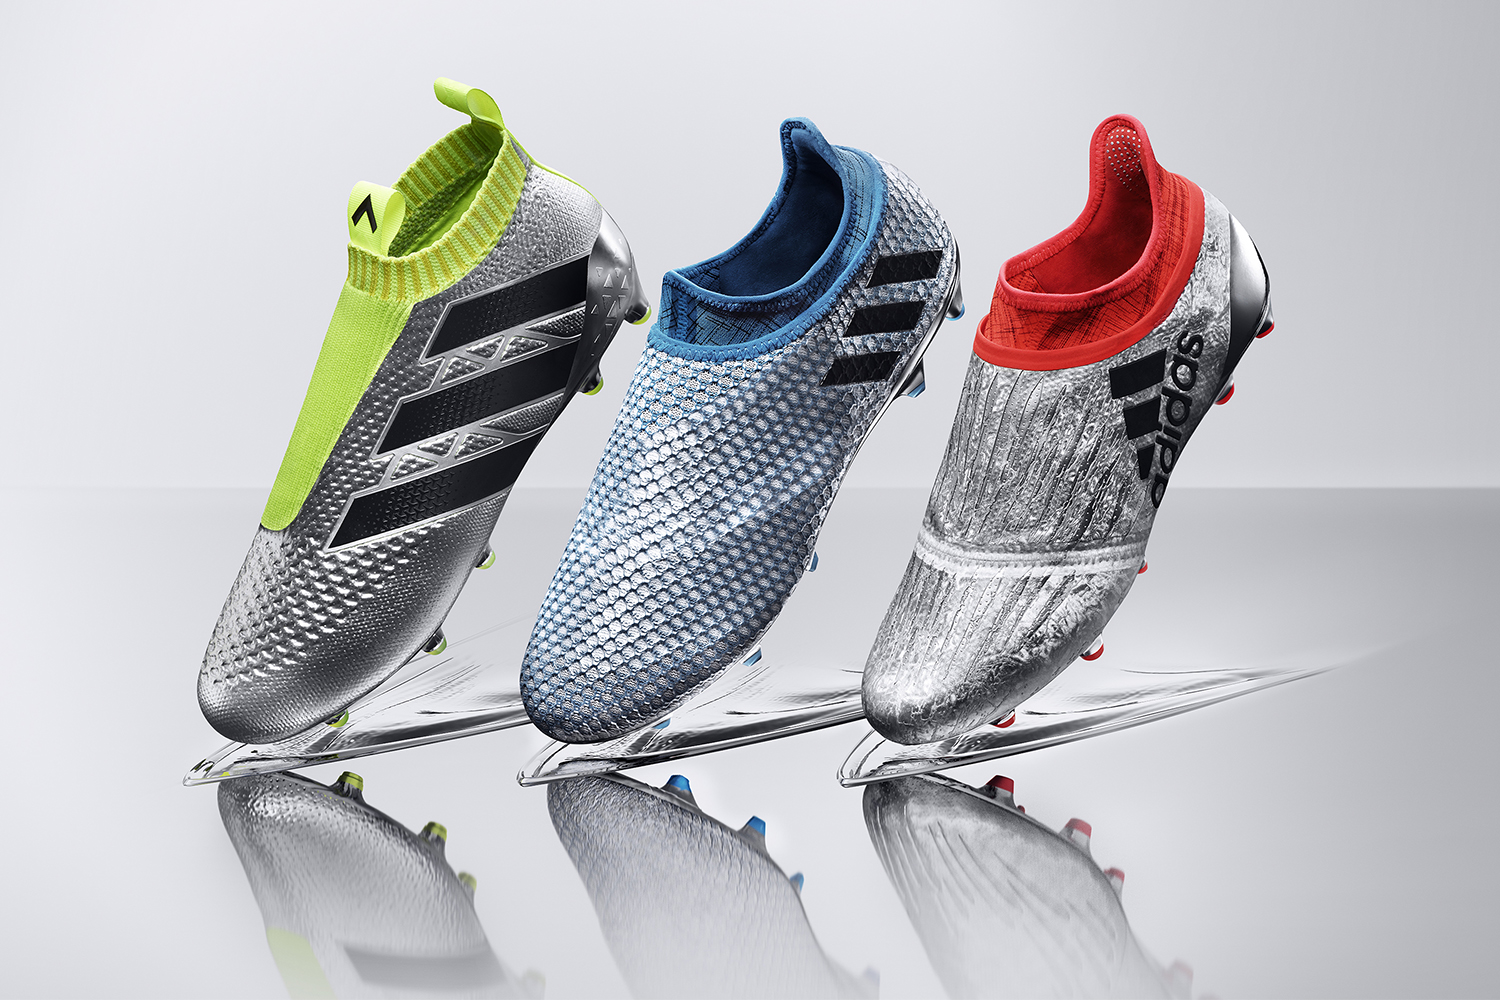 adidas Gives Its Flagship Boots a Mercury Makeover